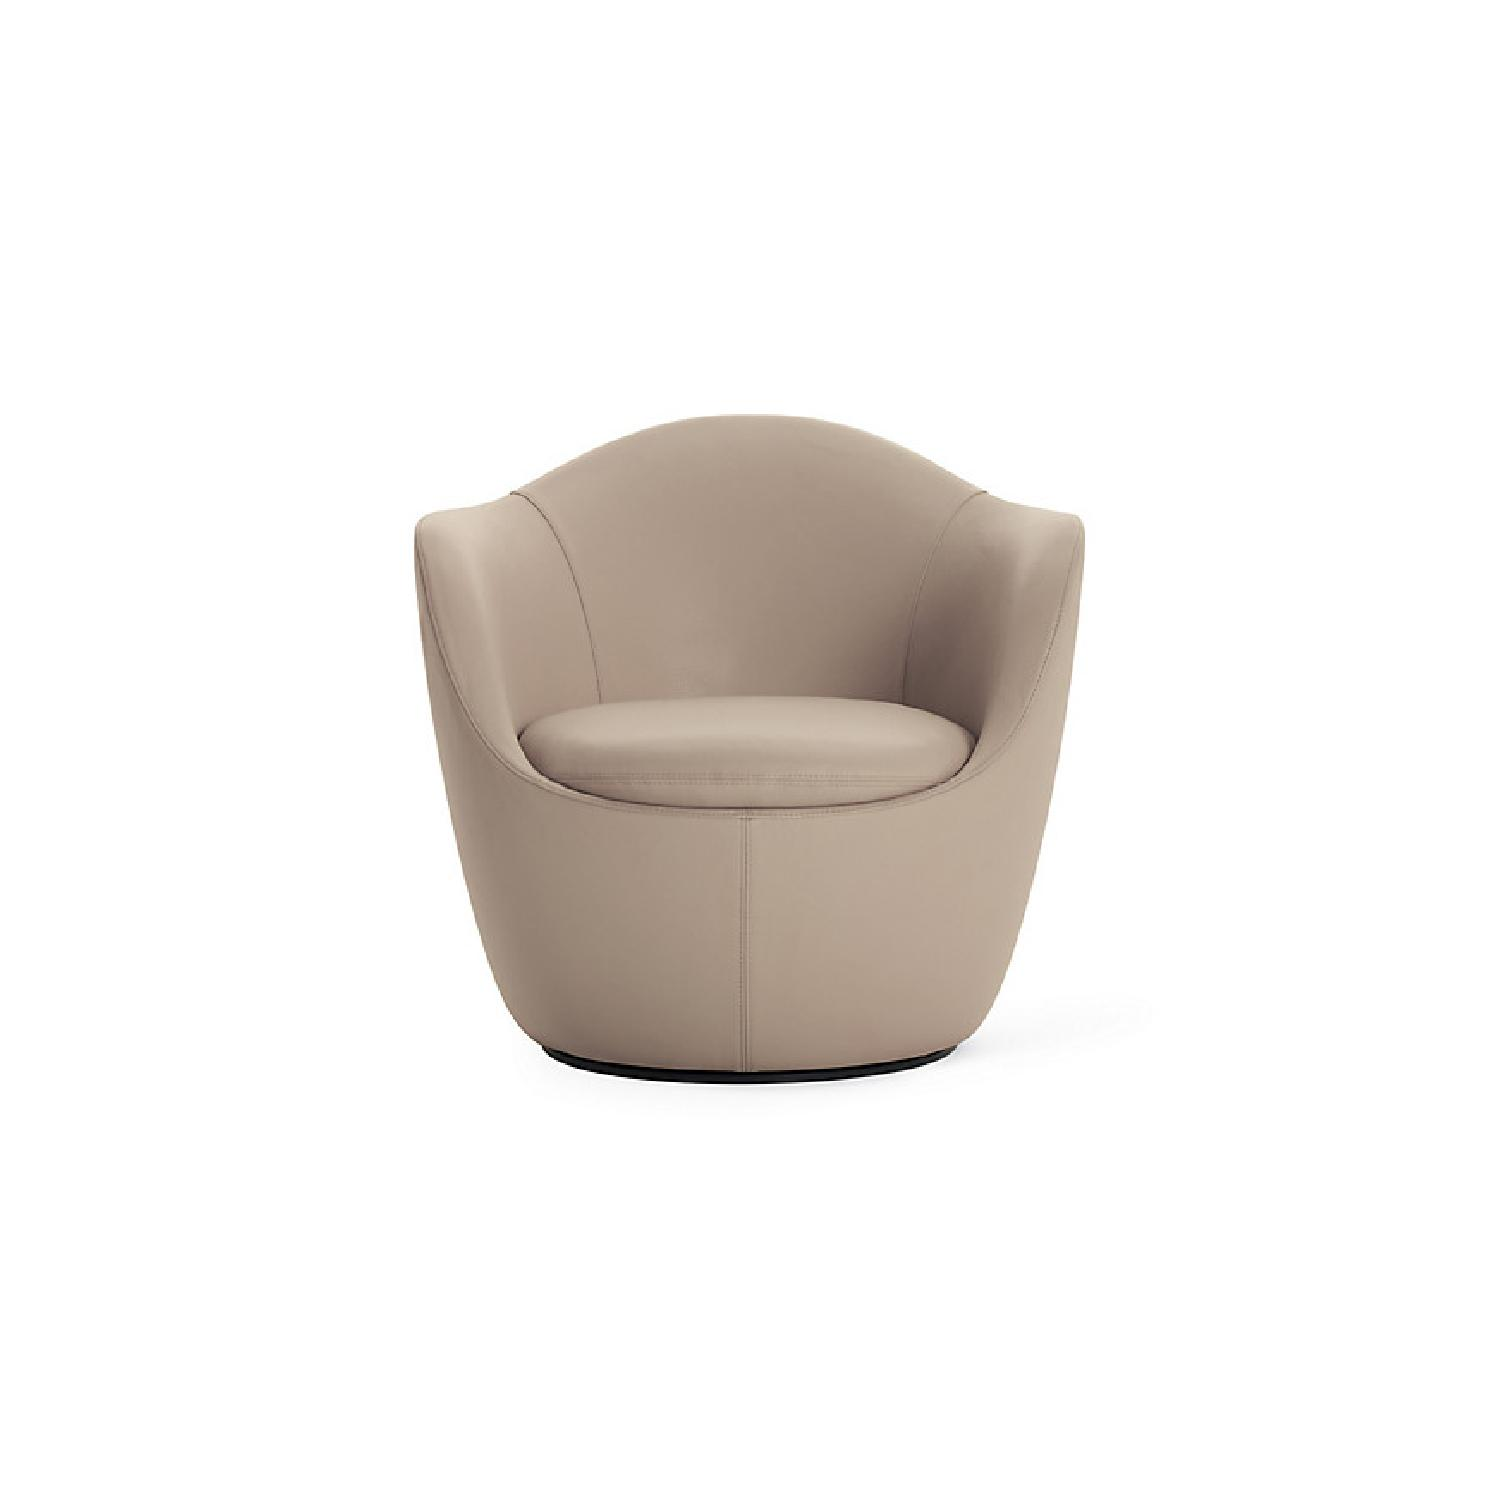 Design Within Reach Exclusive U Turn Swivel Chair - image-0